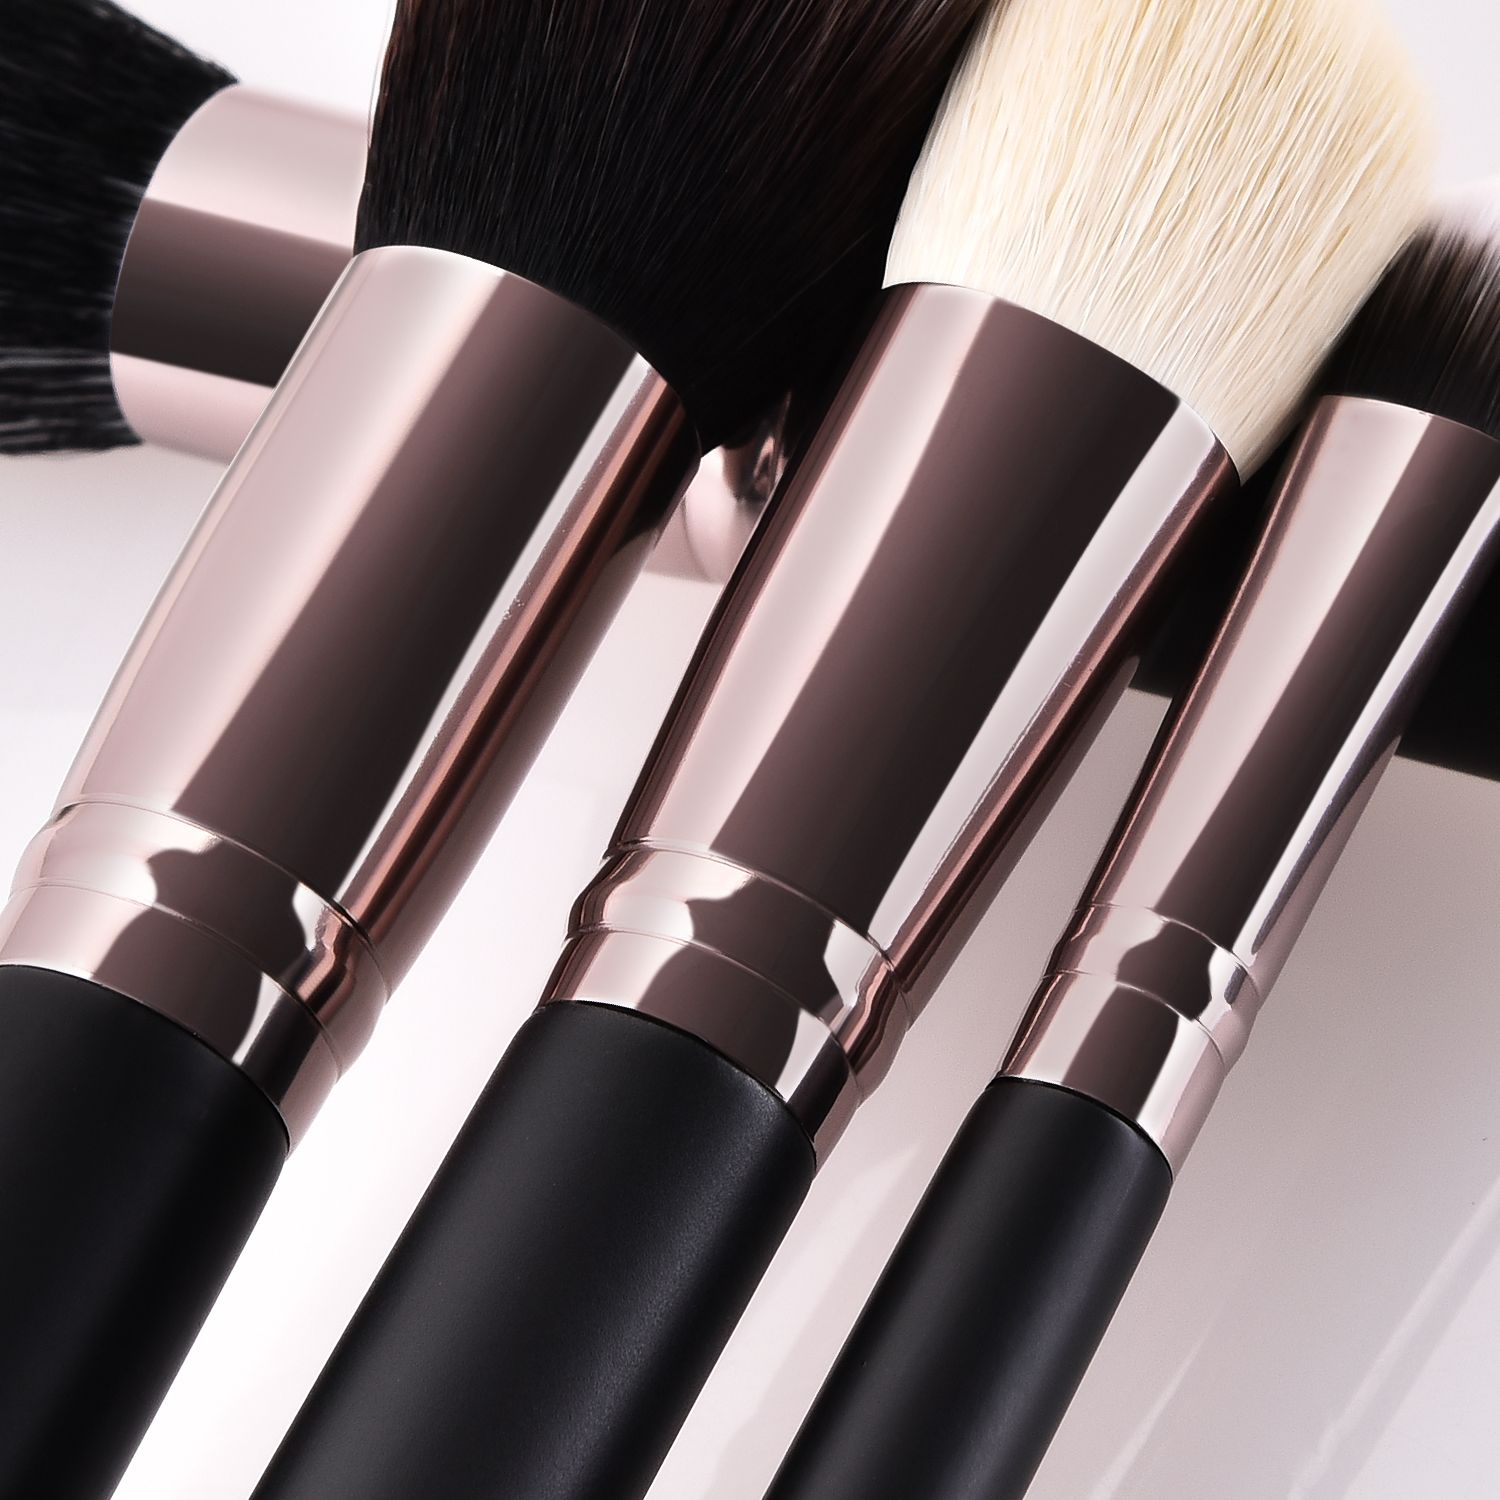 Professional makeup brushes set available wholesale